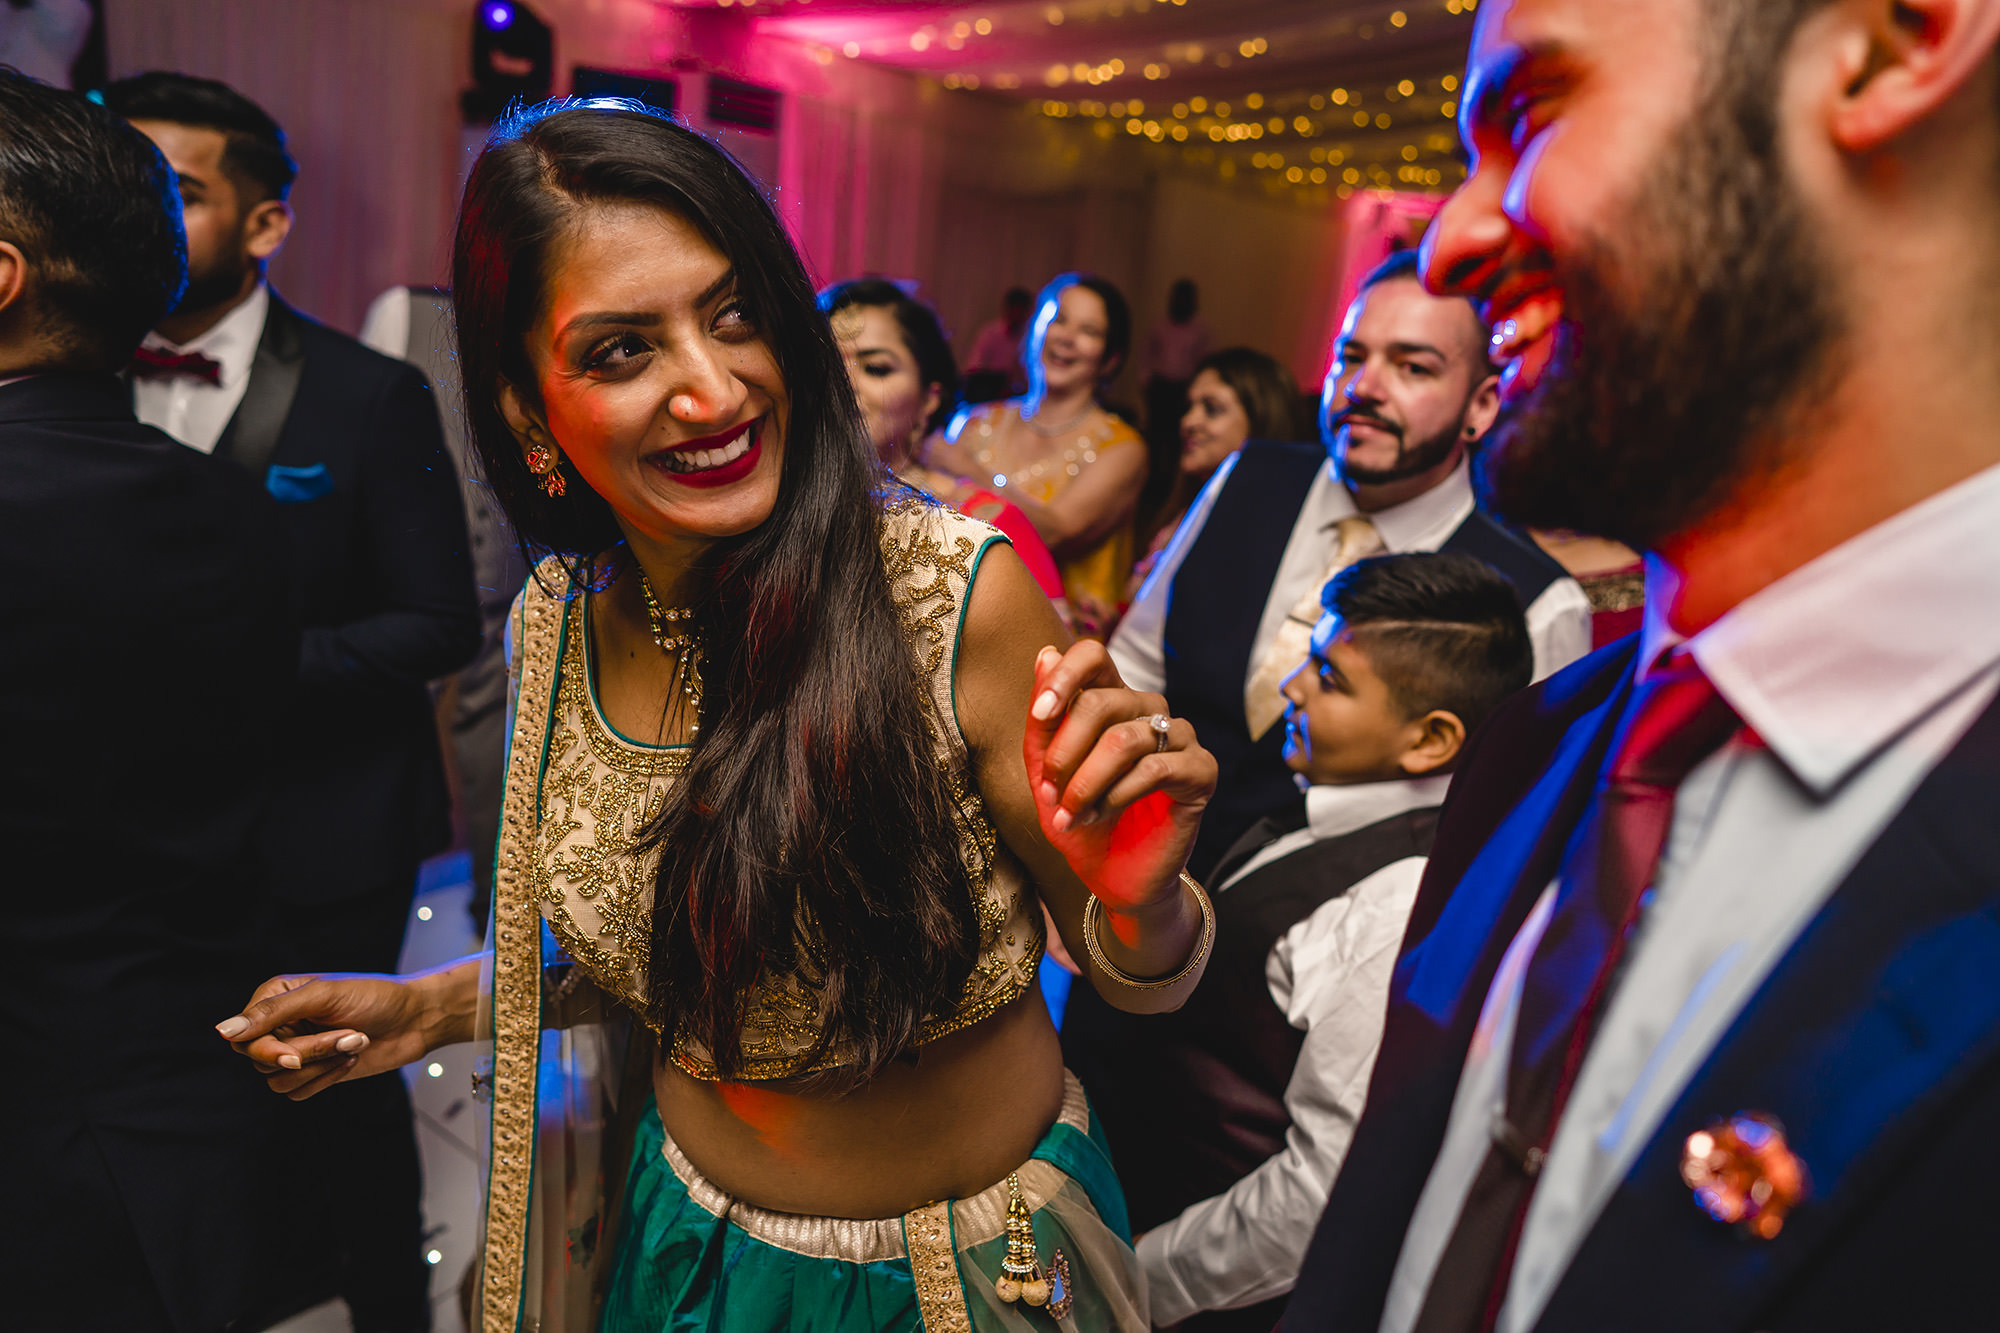 friends partying at the asian wedding party